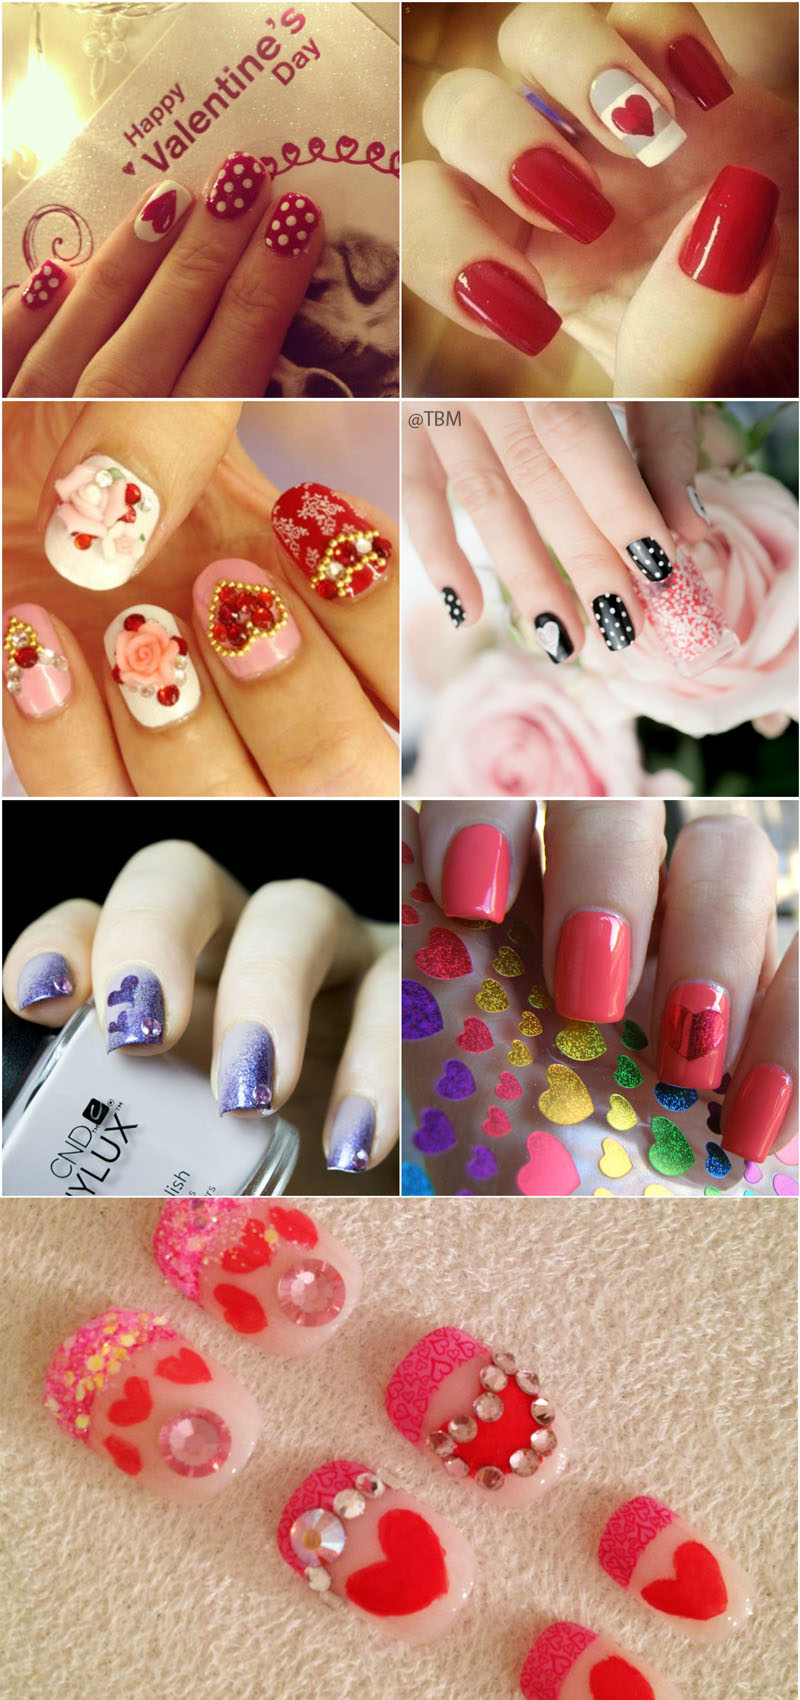 girly-valentine-day-nails